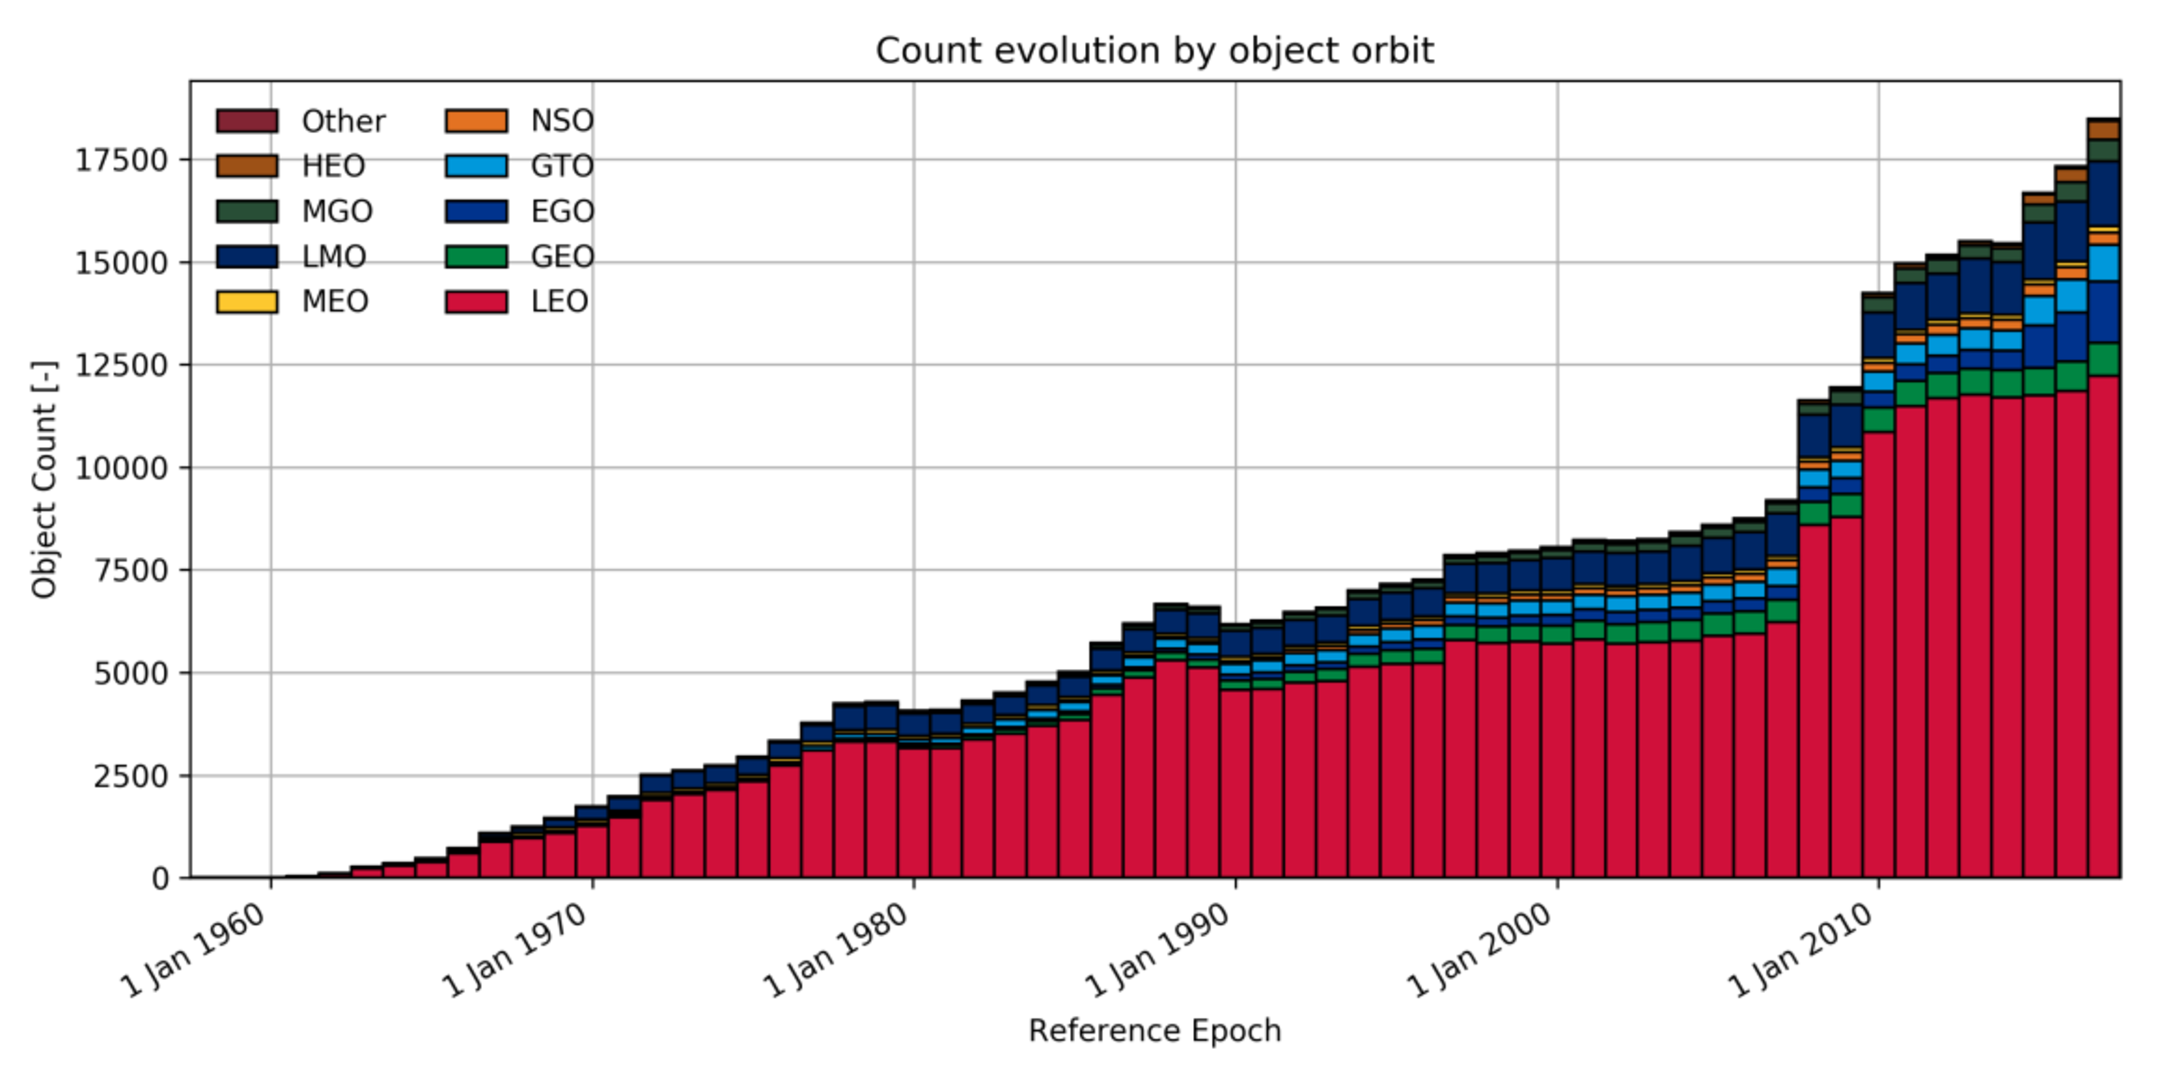 Evolution of space object population